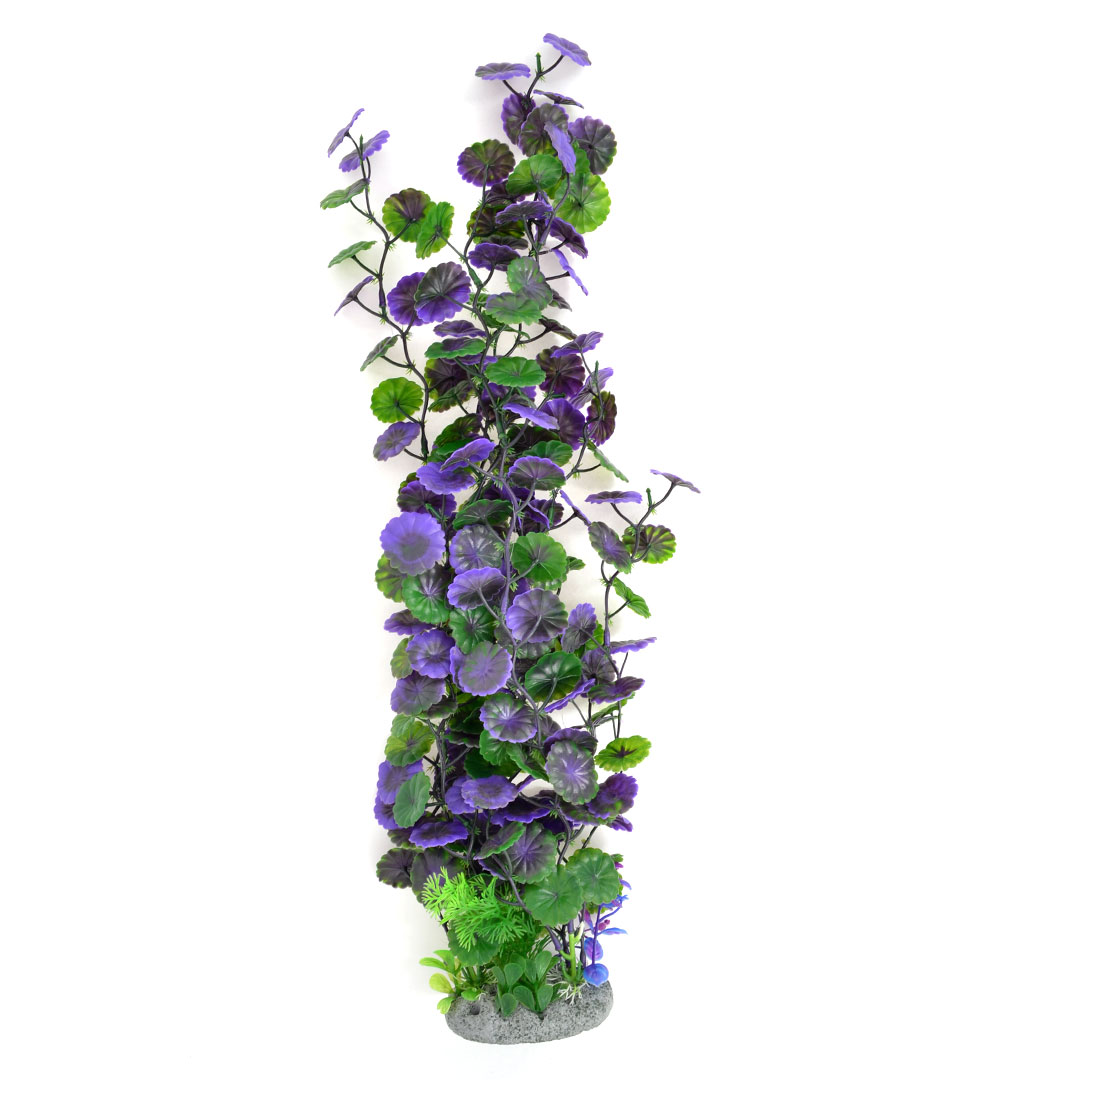 "Green Purple Emulational Plastic Water Plant Decor 21.3""High for Aquarium"